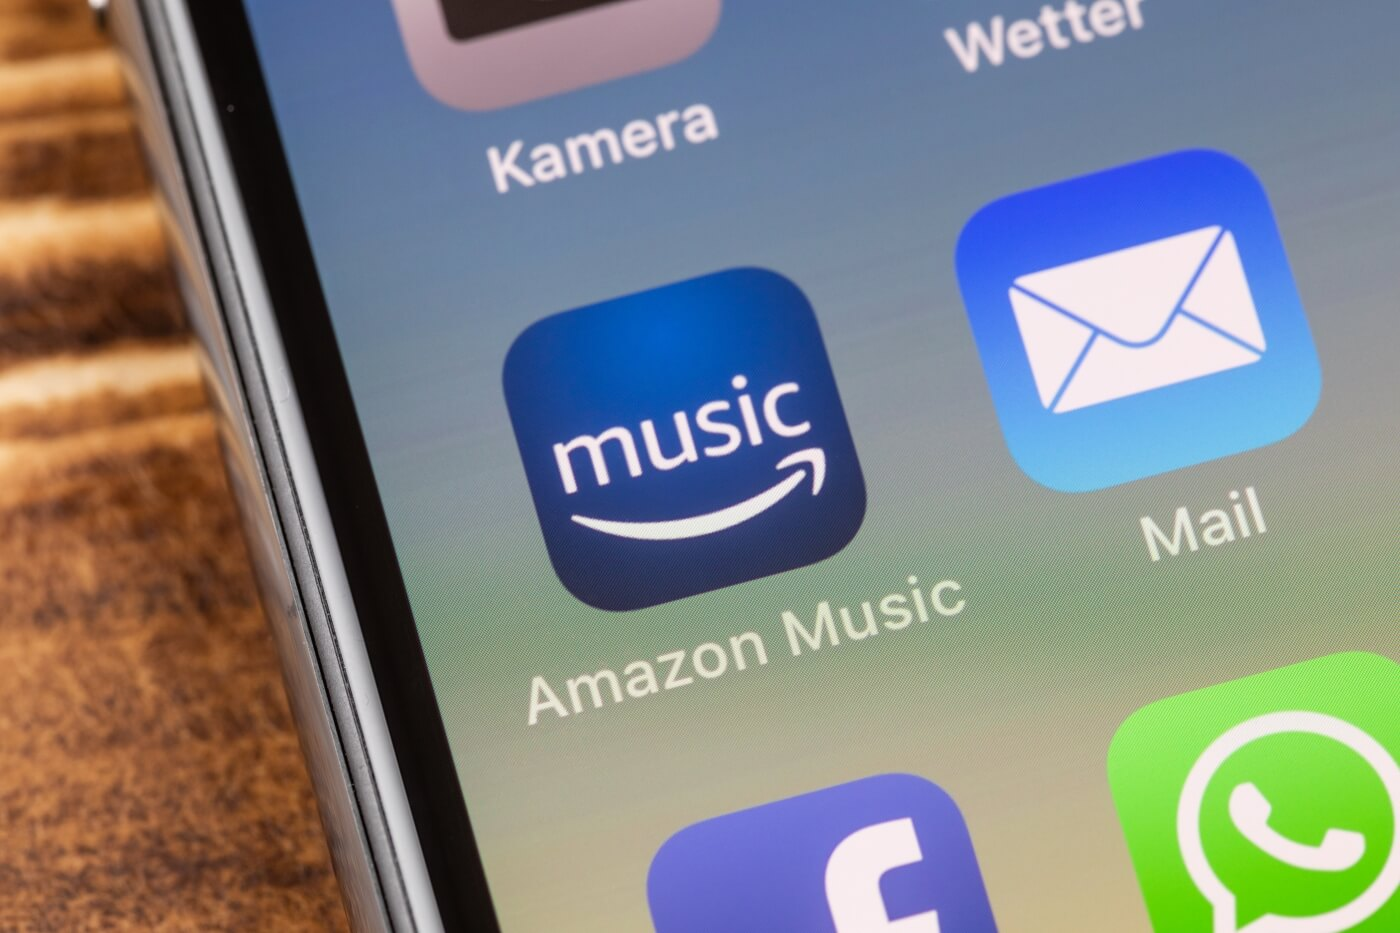 Amazon Music surpasses 55 million users, nearly all of which are paying subscribers